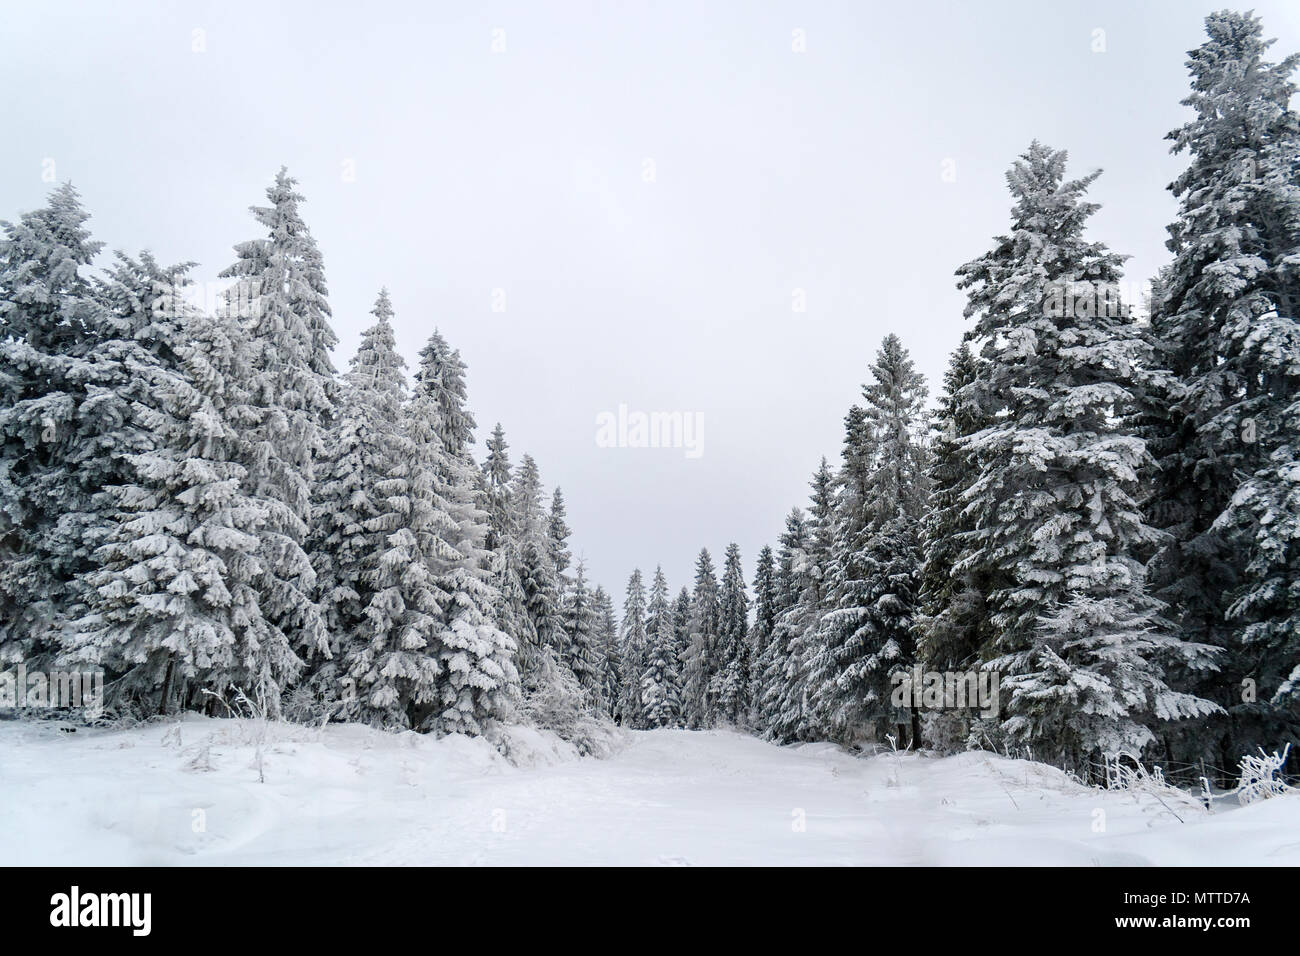 Snowbound spruces in the Carpathian Mountains, Ukraine - Stock Image